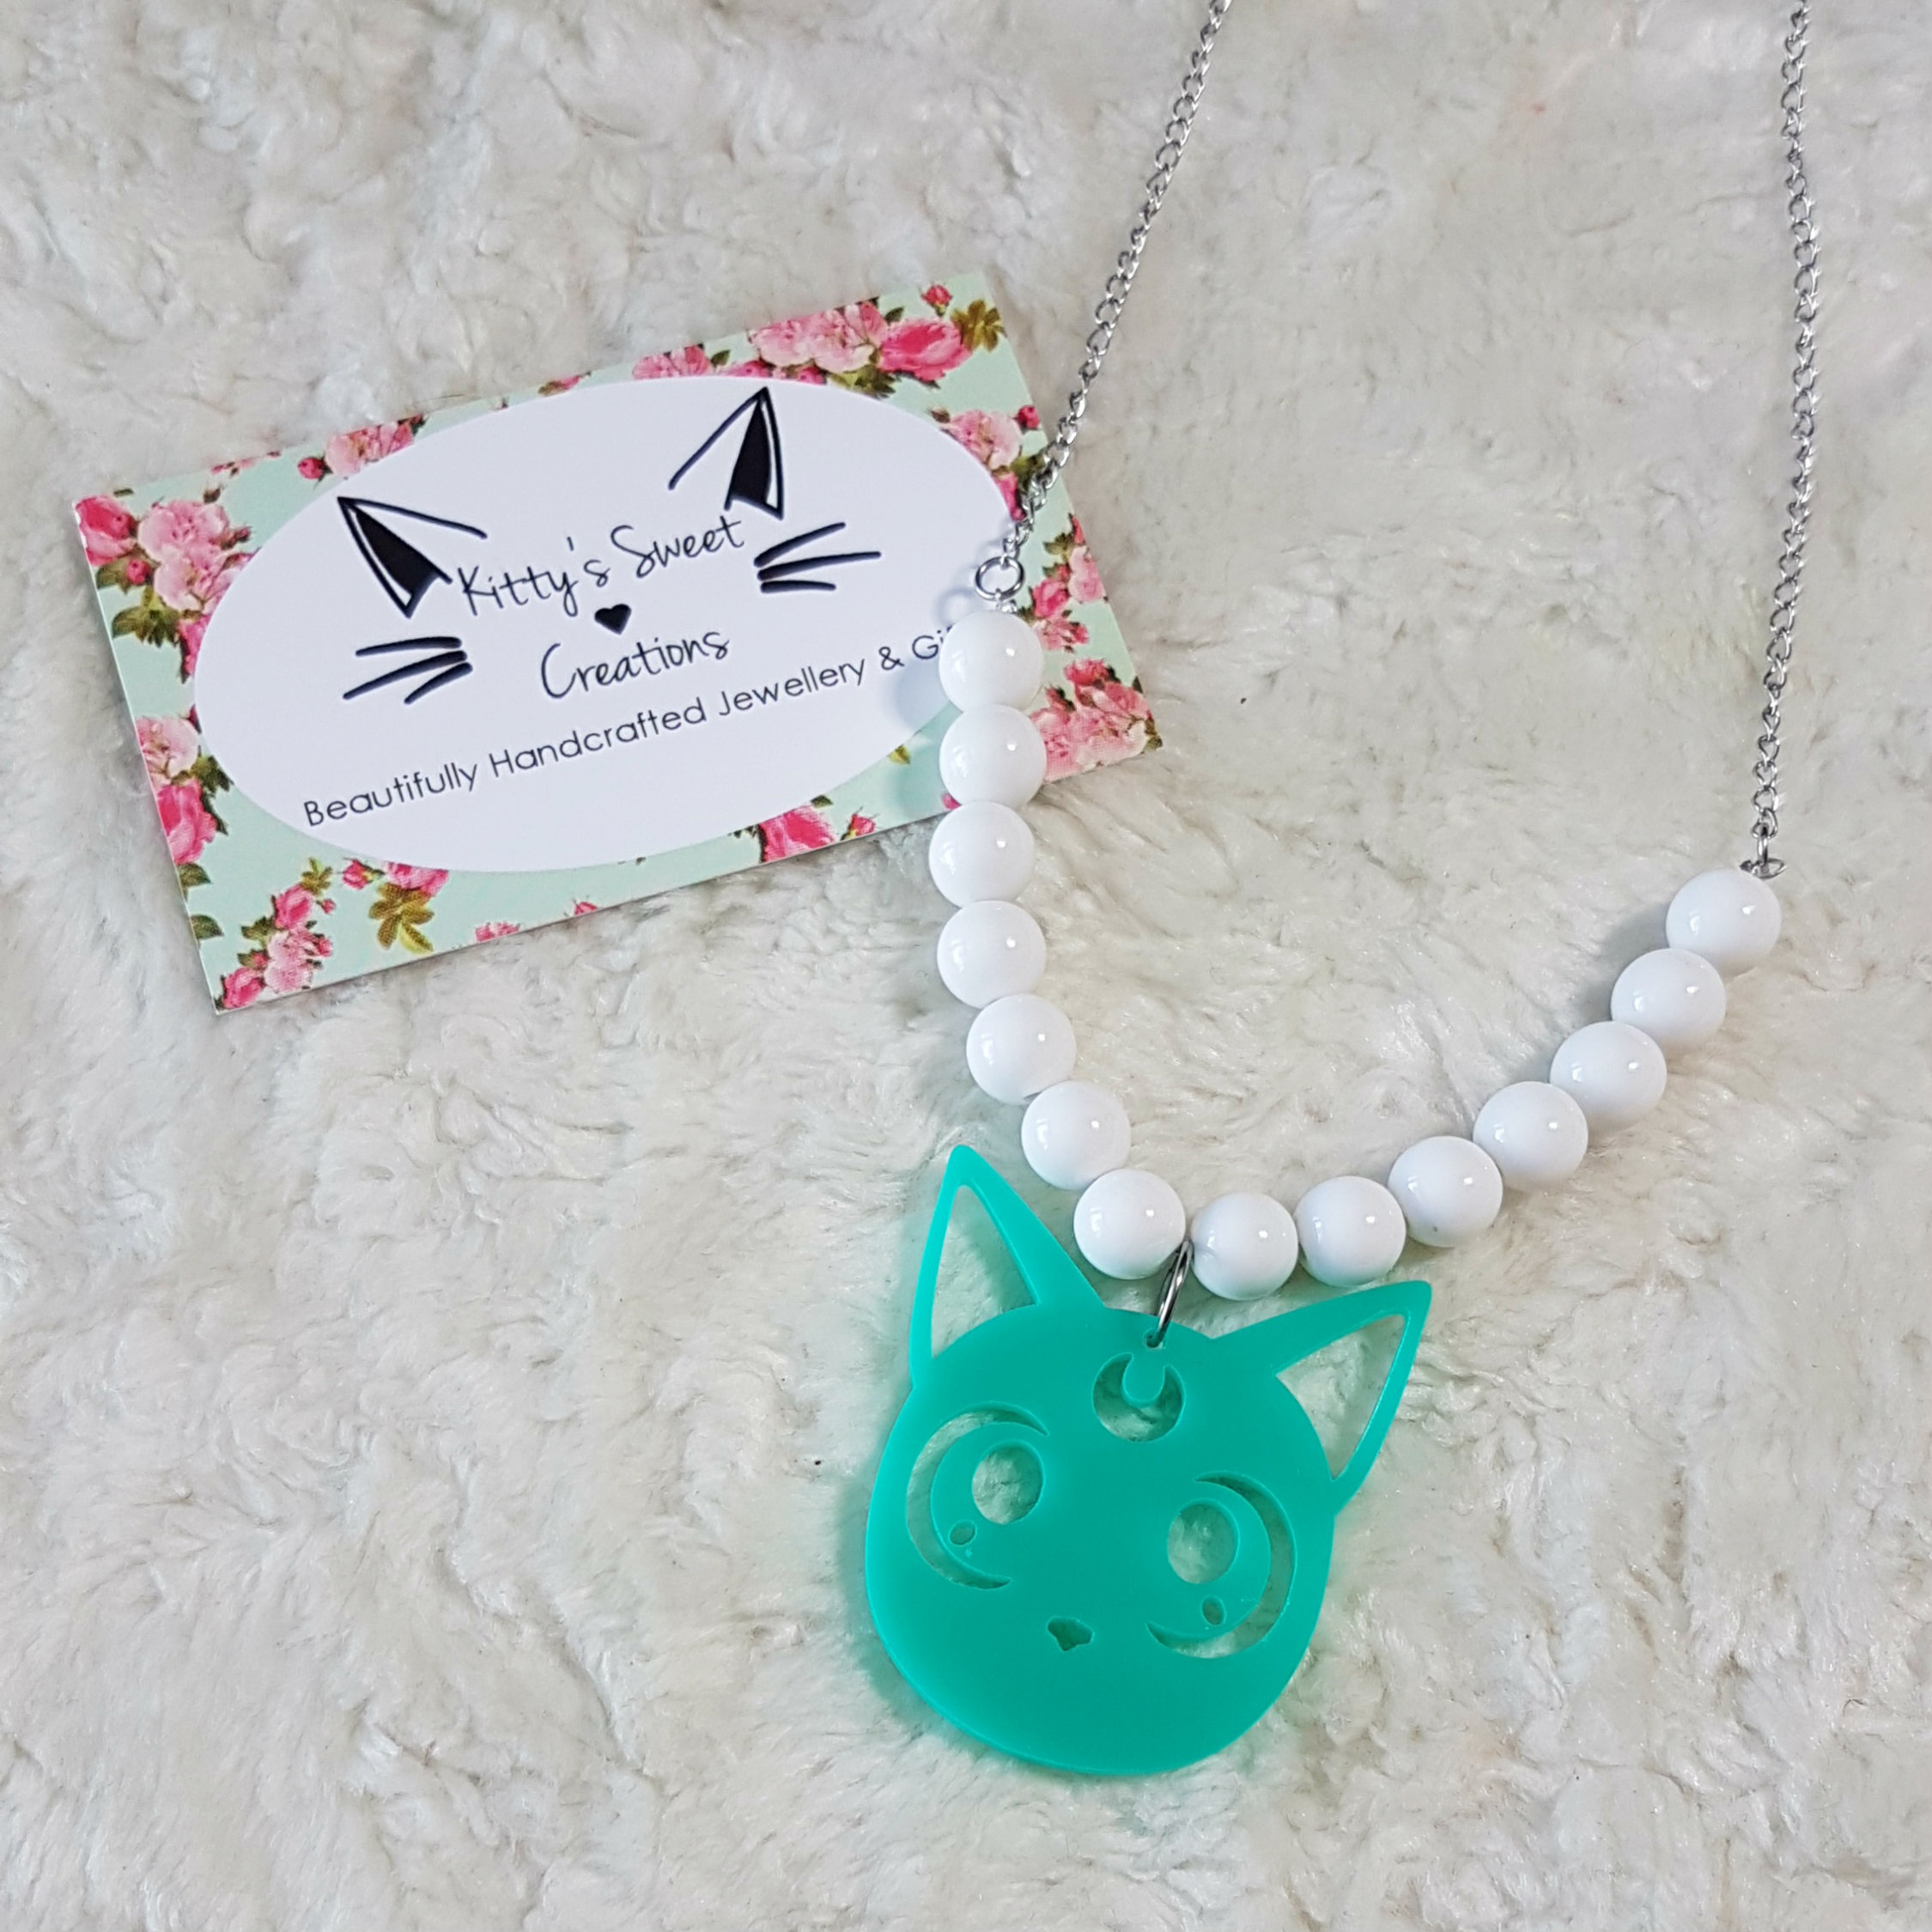 lover retro zoom cat il fullxfull crazy jewelry posh gift jewellery listing necklace